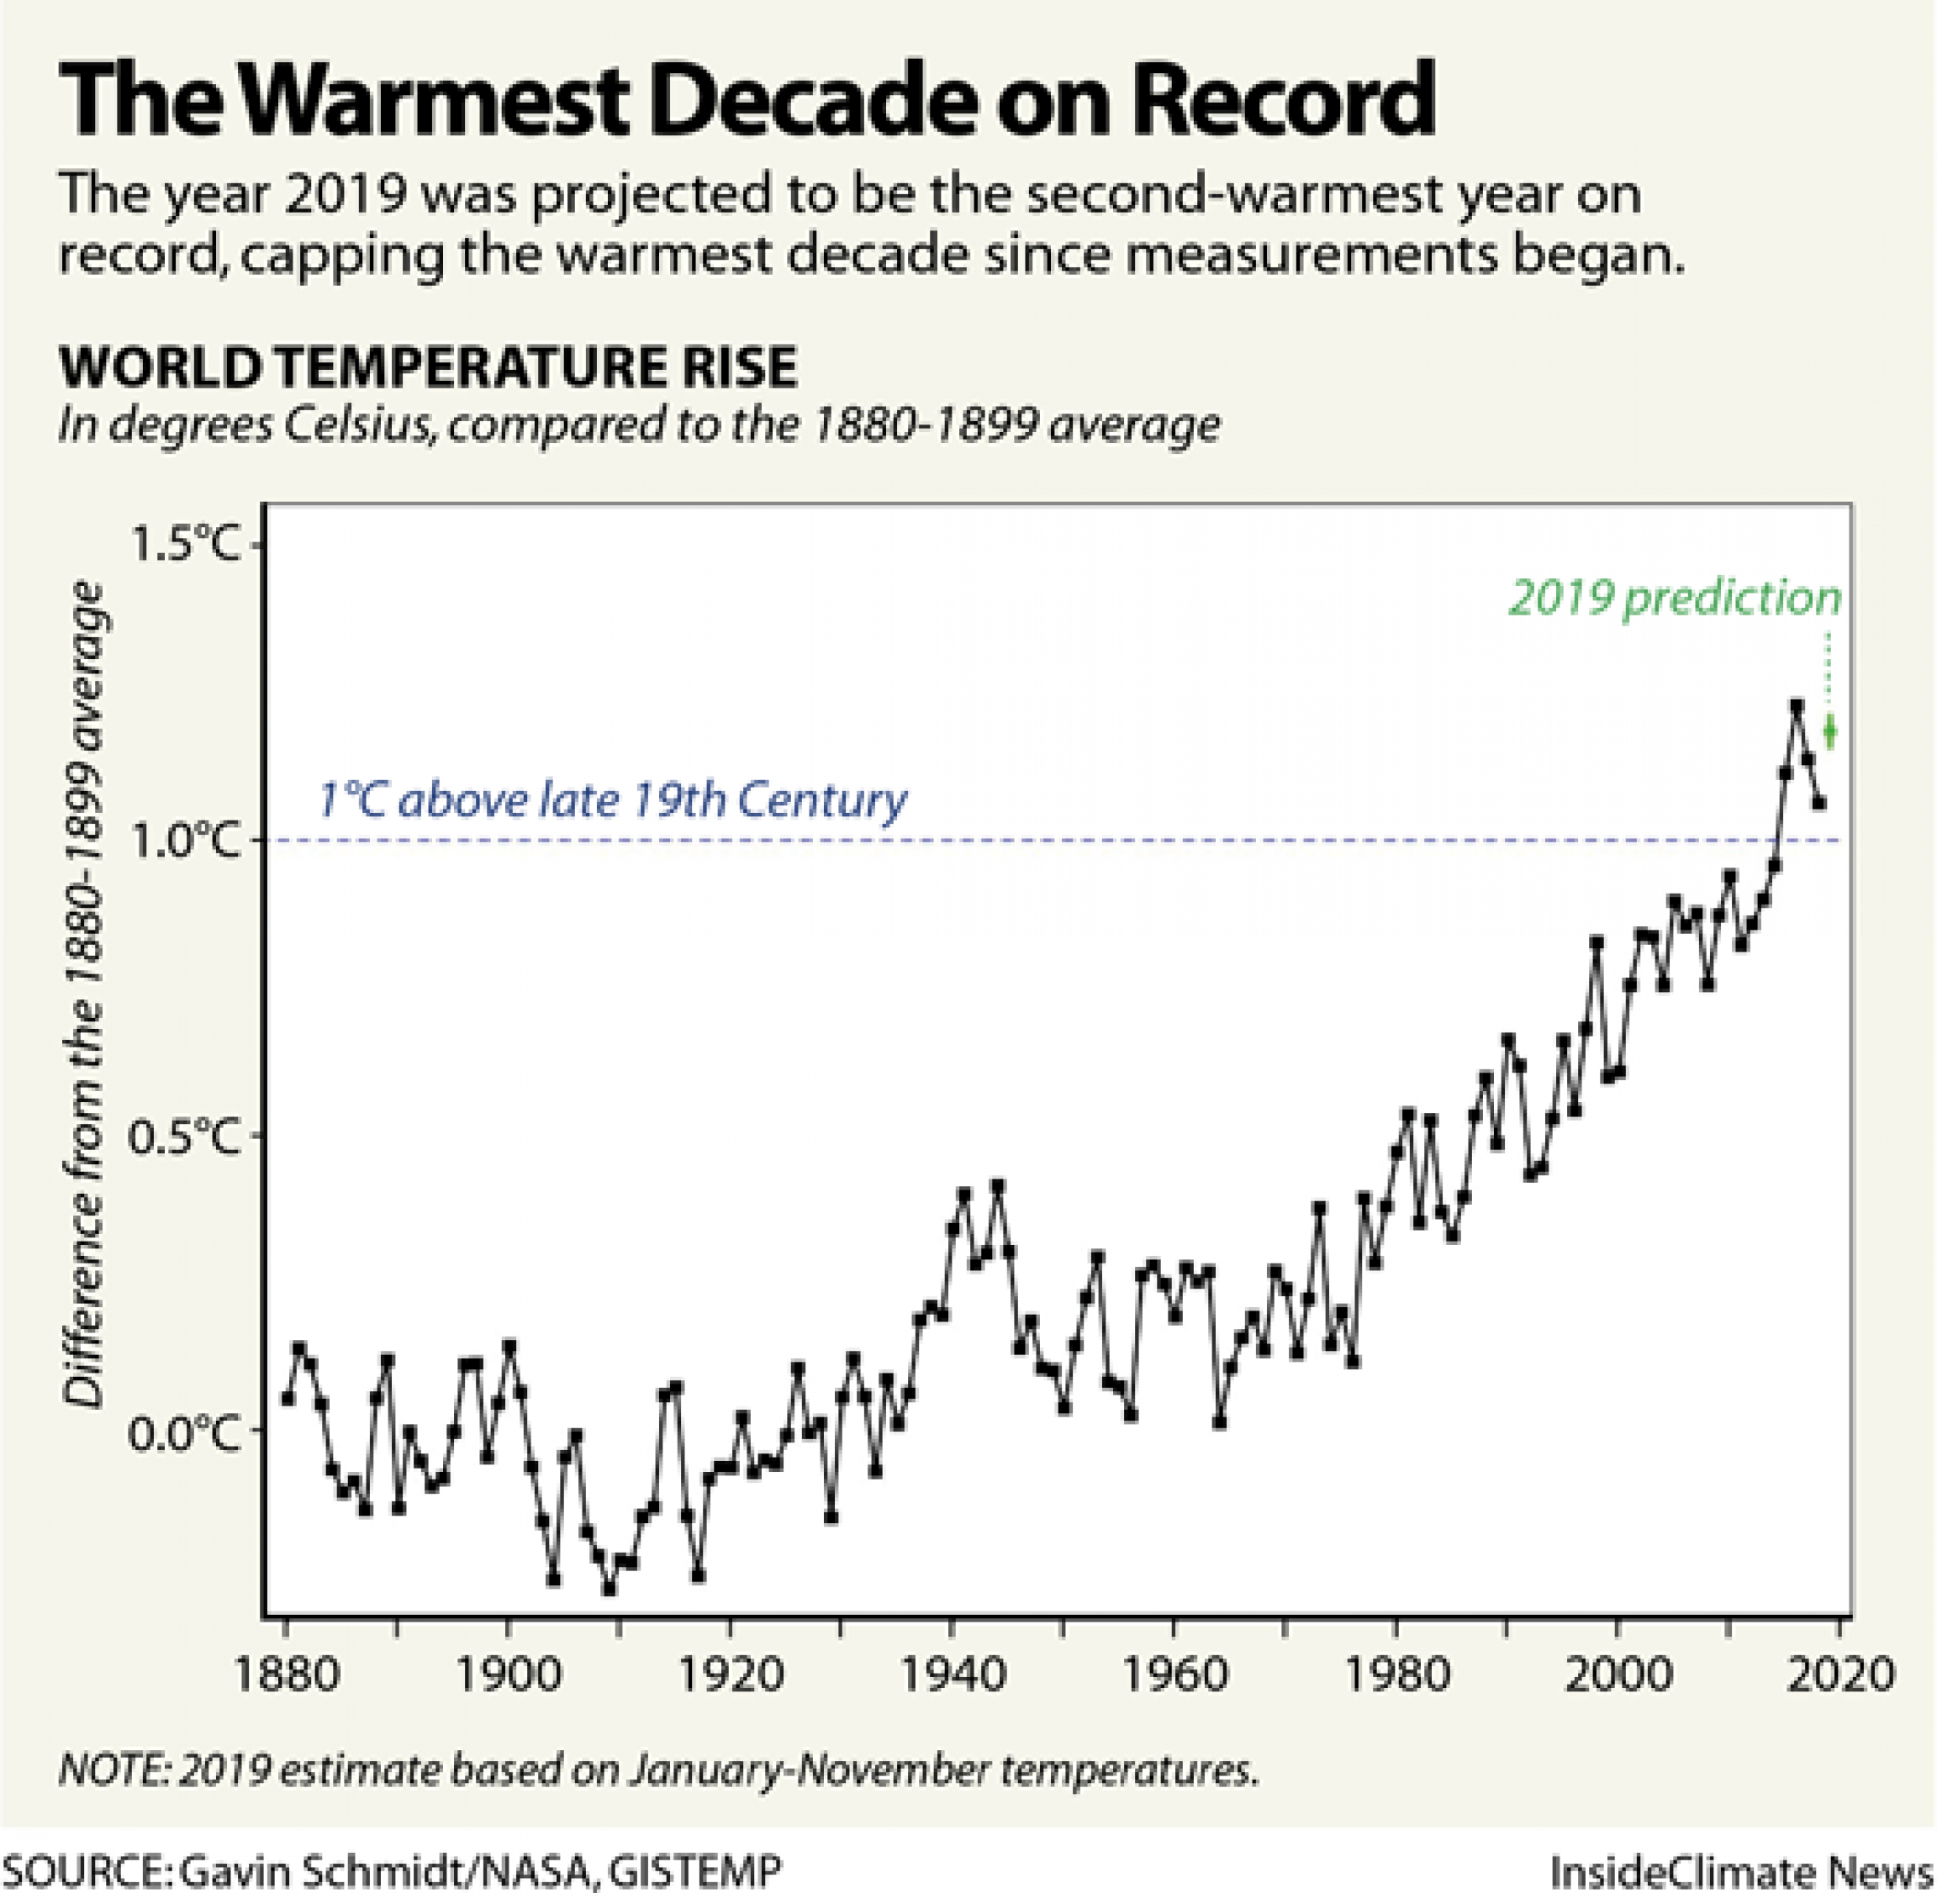 A graph showing the global temperature over the years.